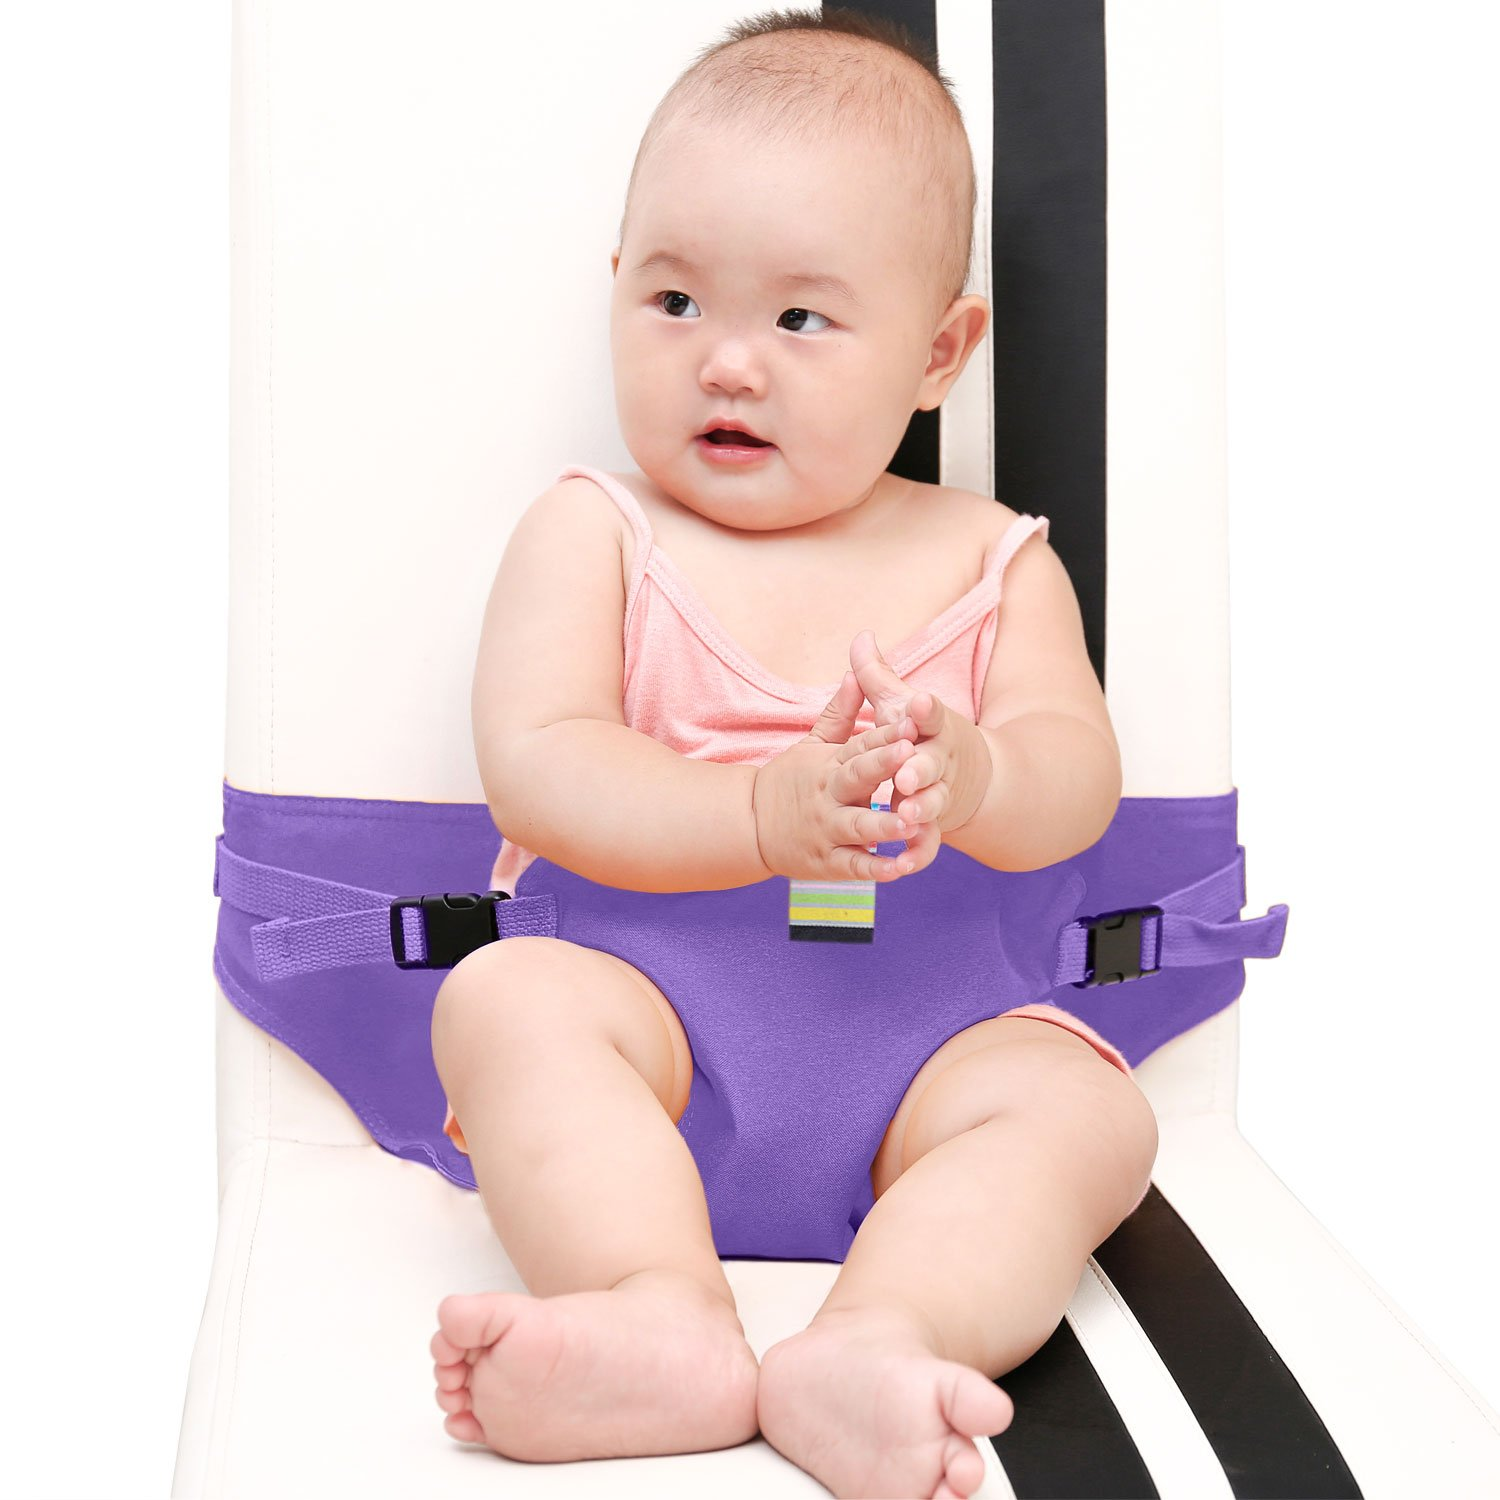 red KIKIGOAL Portable Washable Baby Travel High Chair Booster Safety Seat Strap Harness Belt for Baby Feeding